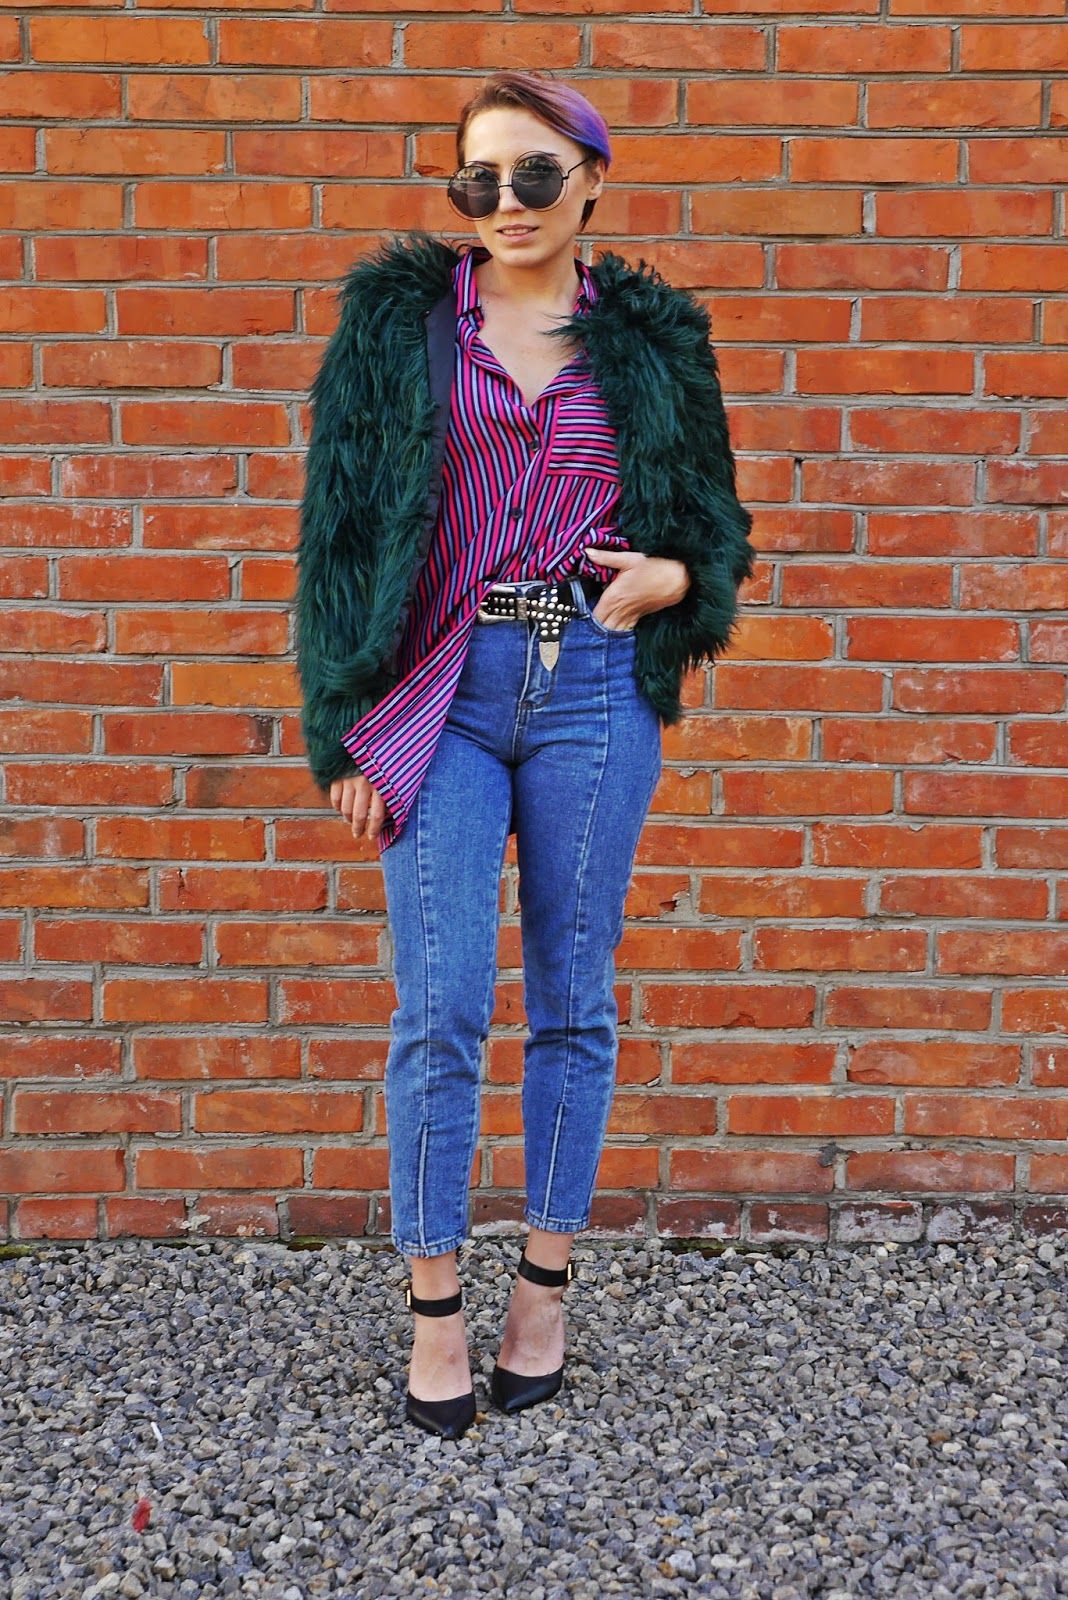 3a_green_fur_stripes_shirt_karyn_blog_modowy_031017f